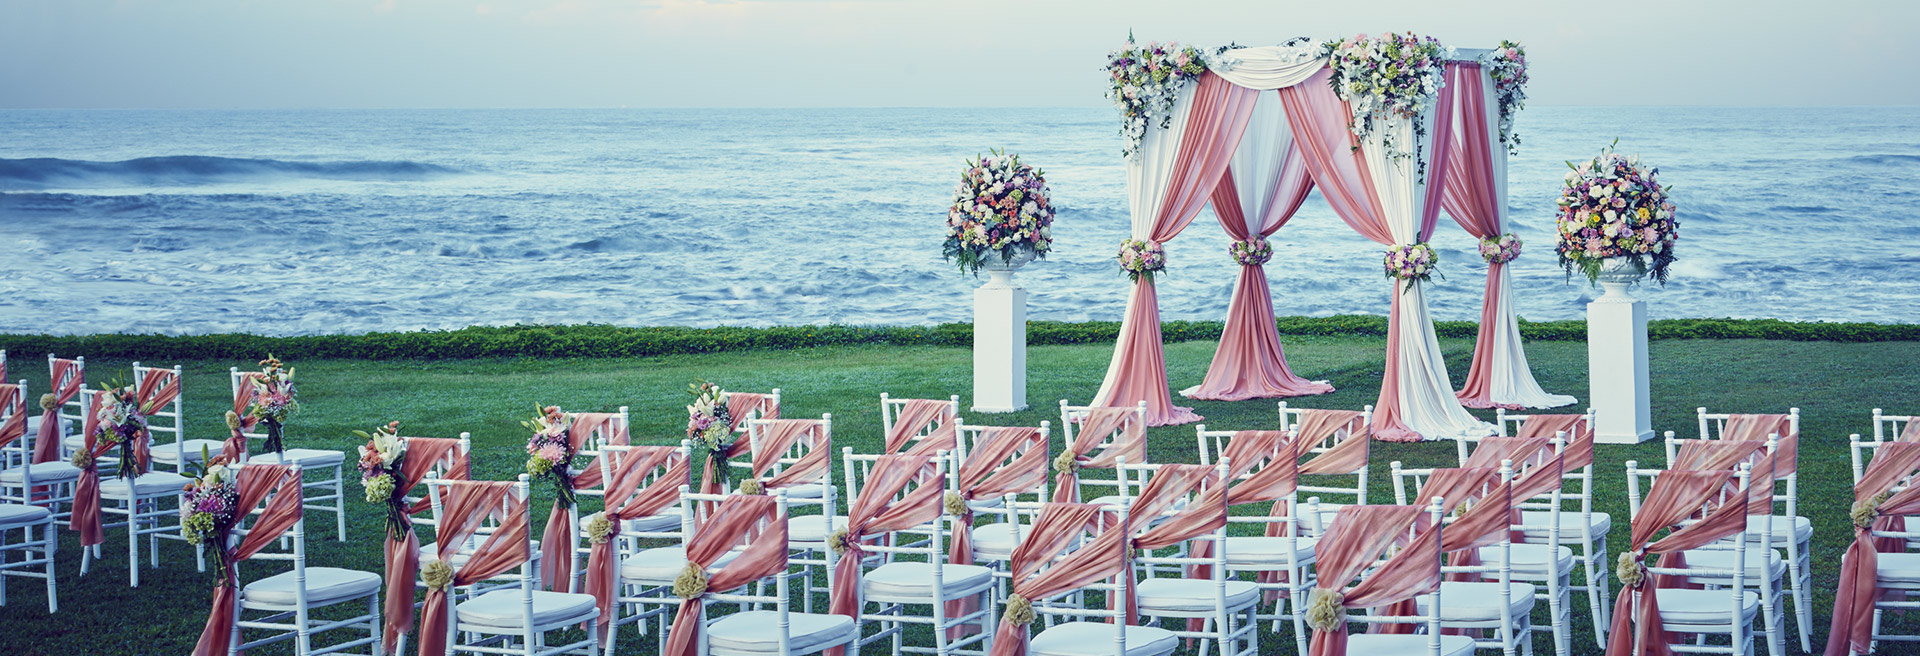 Wedding hotels galle sri lanka weddings at jetwing lighthouse galle book now junglespirit Gallery